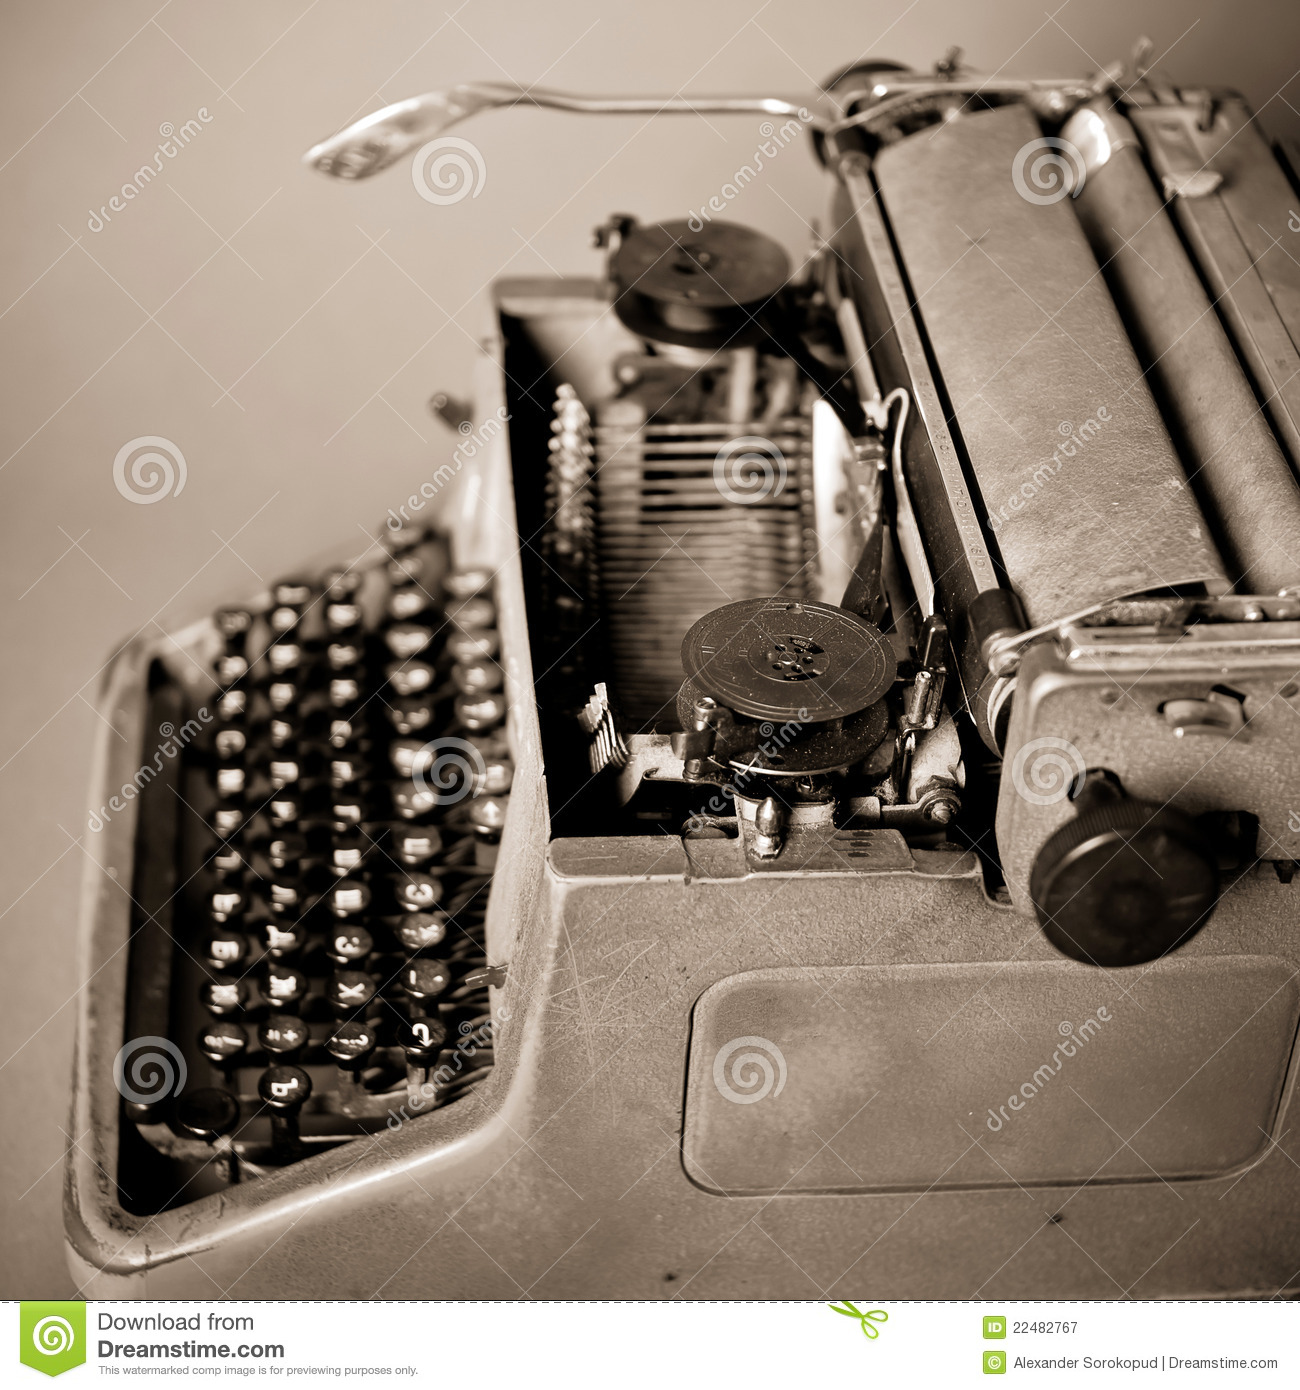 23a1f1802eb Old vintage typewriter stock image. Image of mechanical - 22482767